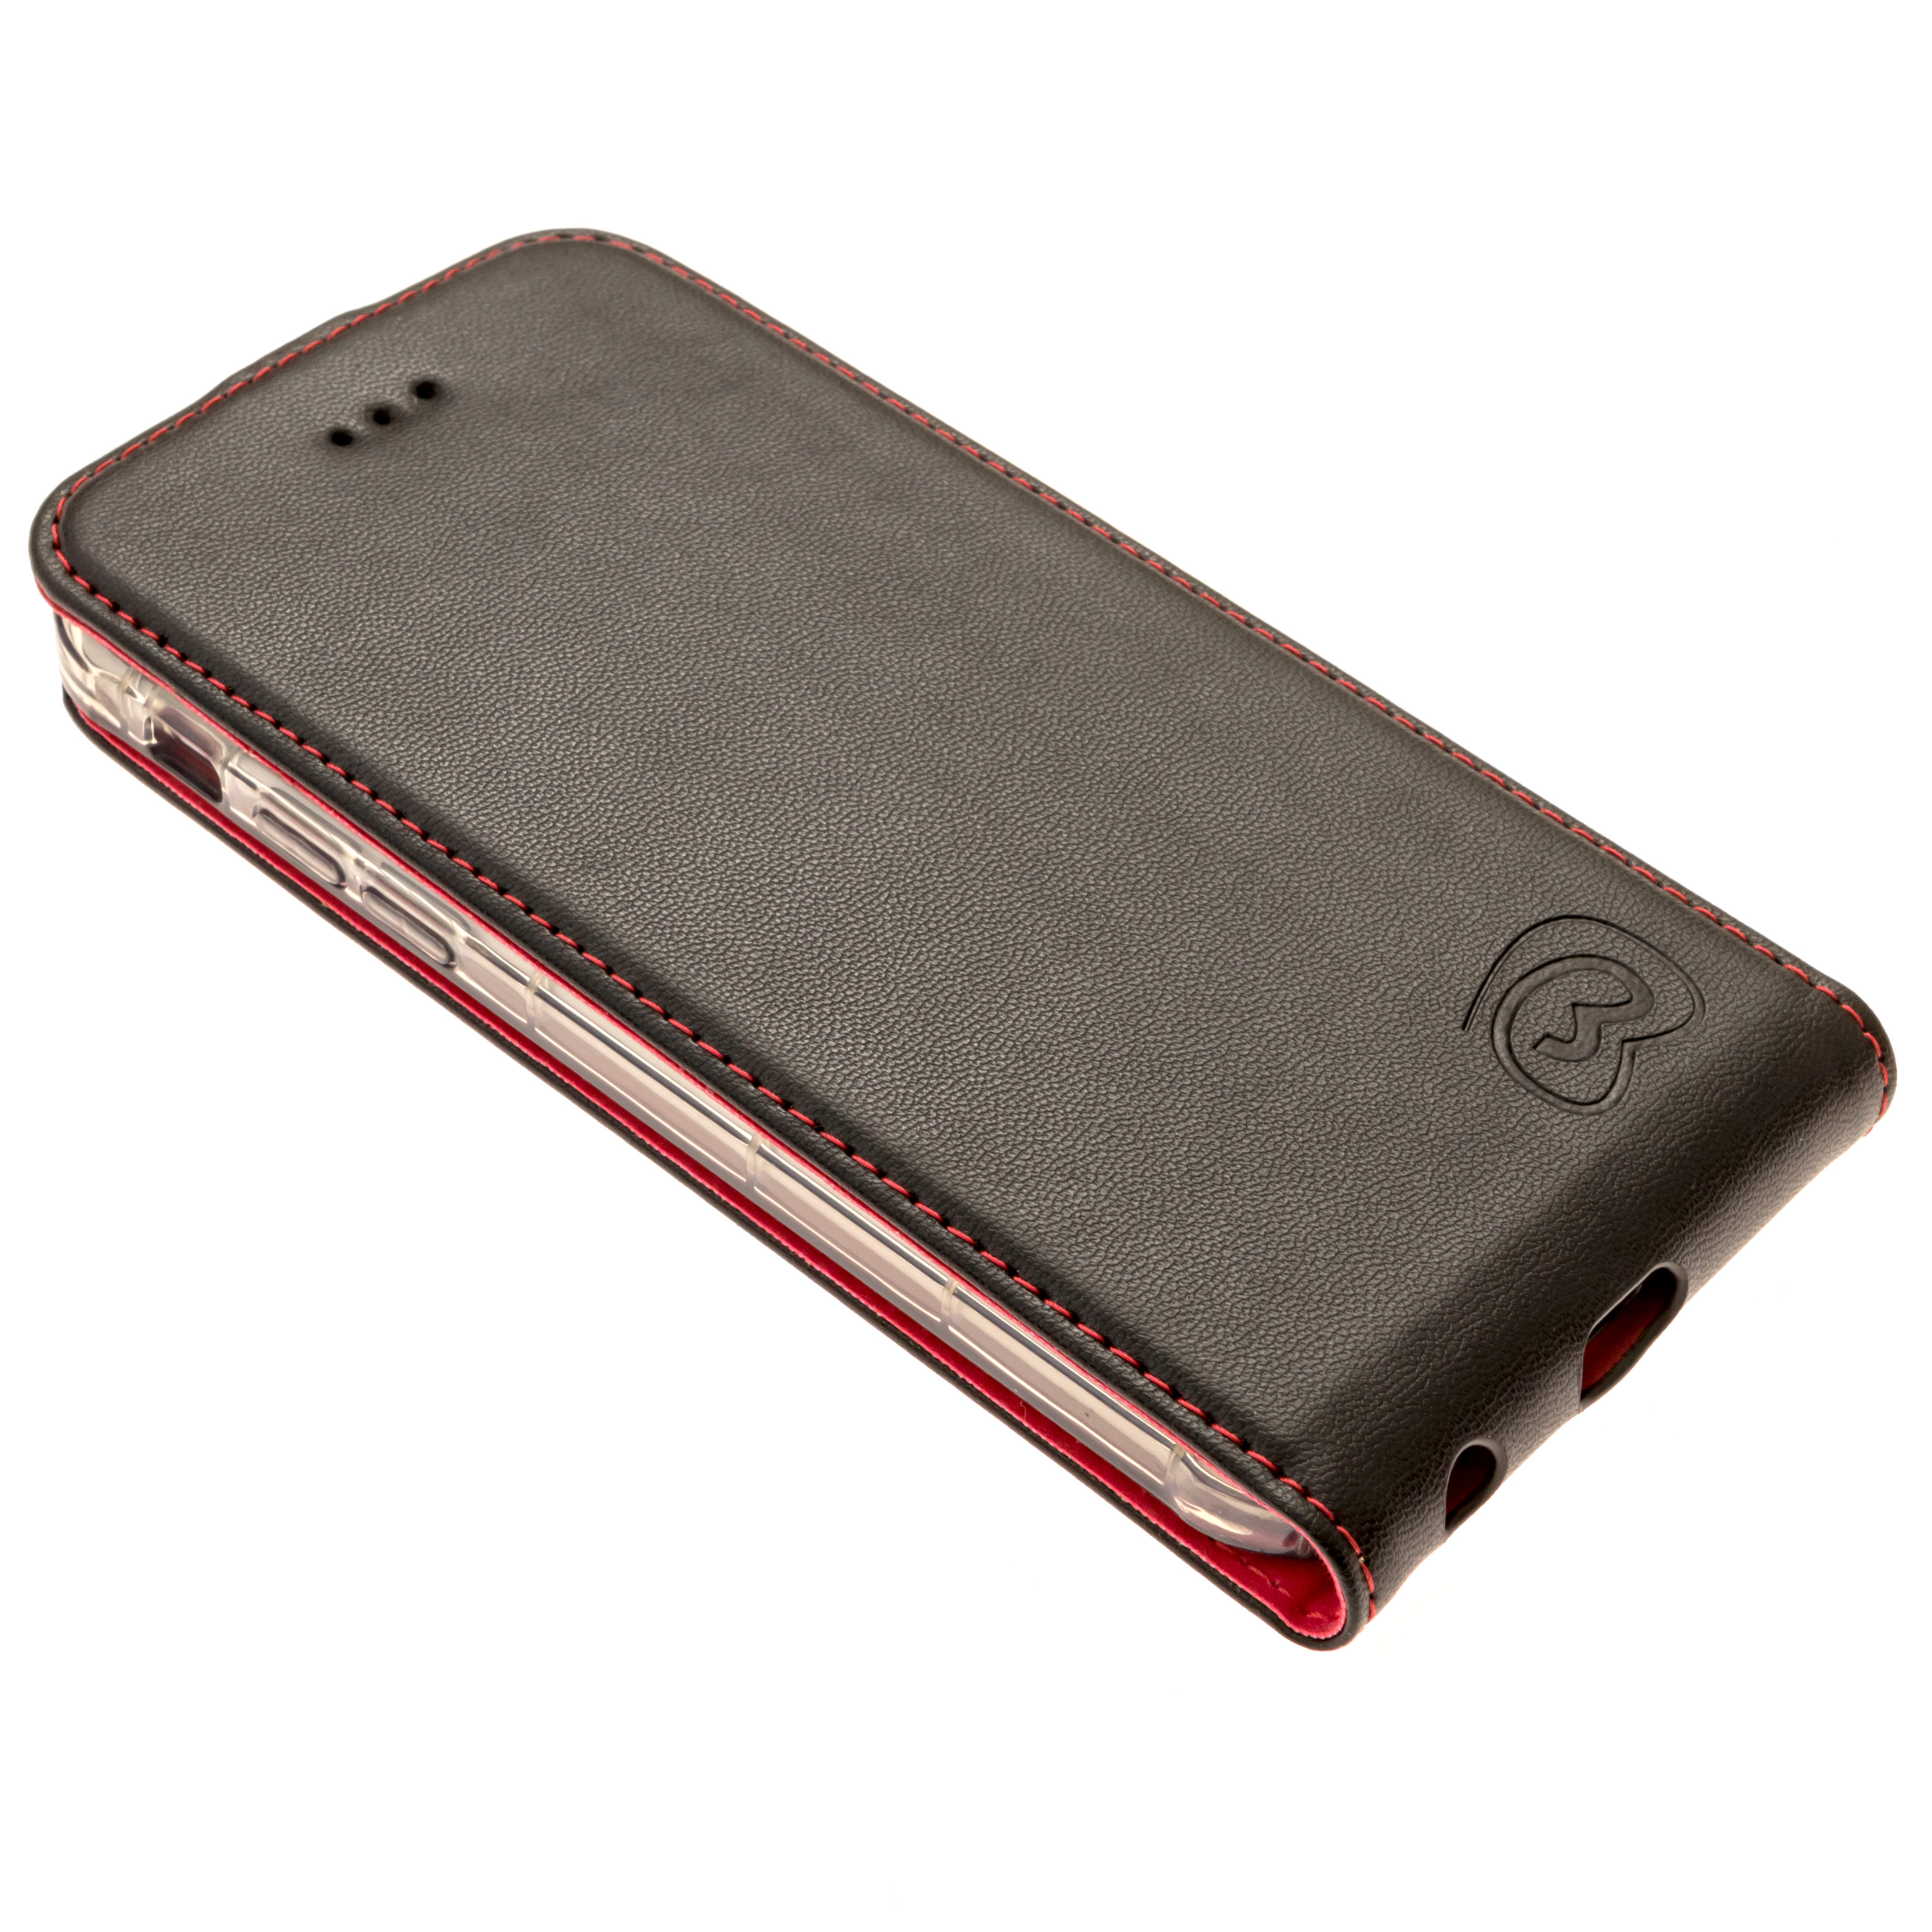 los angeles 06ffa 90608 WaveWall Universal Flip Cell Phone Case for EMF and RFID protection